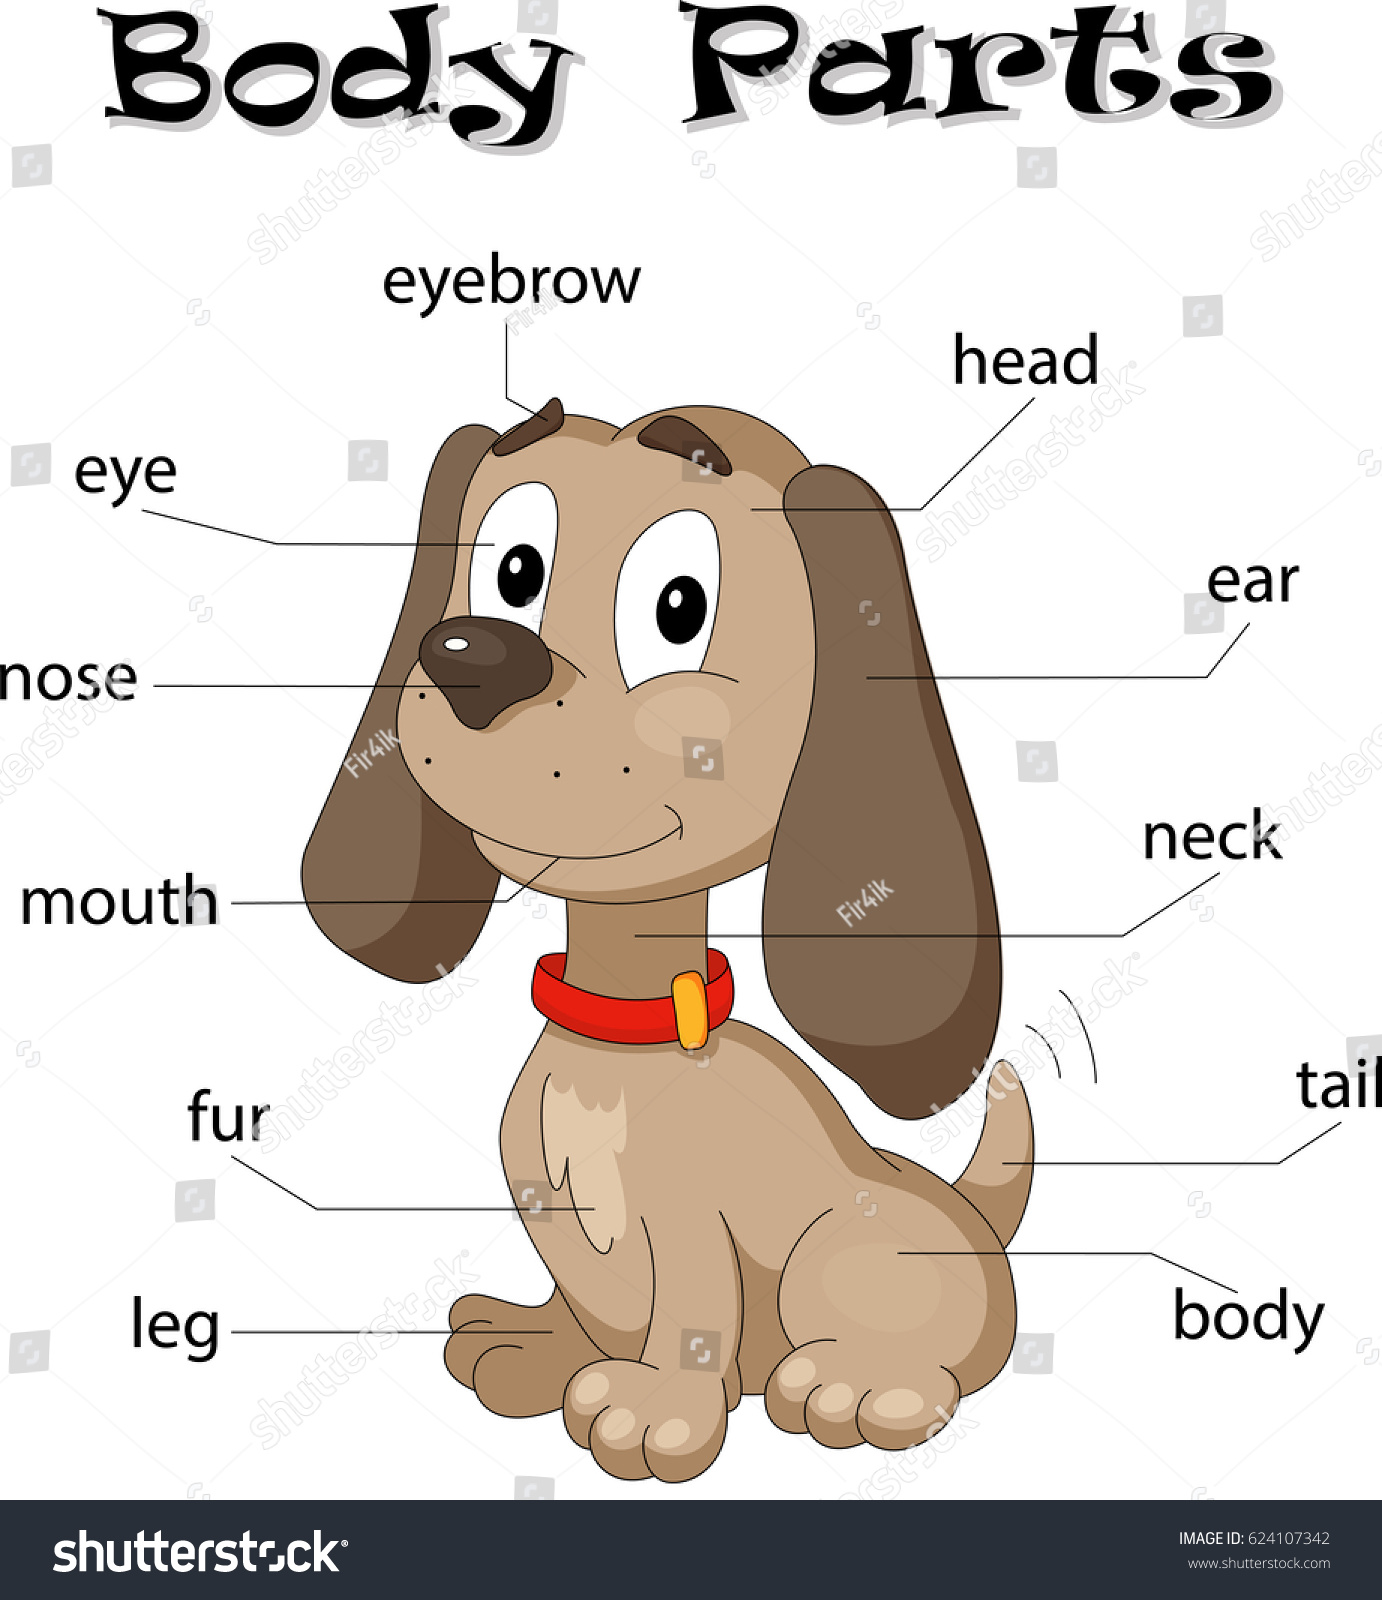 Royalty-free Dog body parts. Animal anatomy in… #624107342 Stock ...